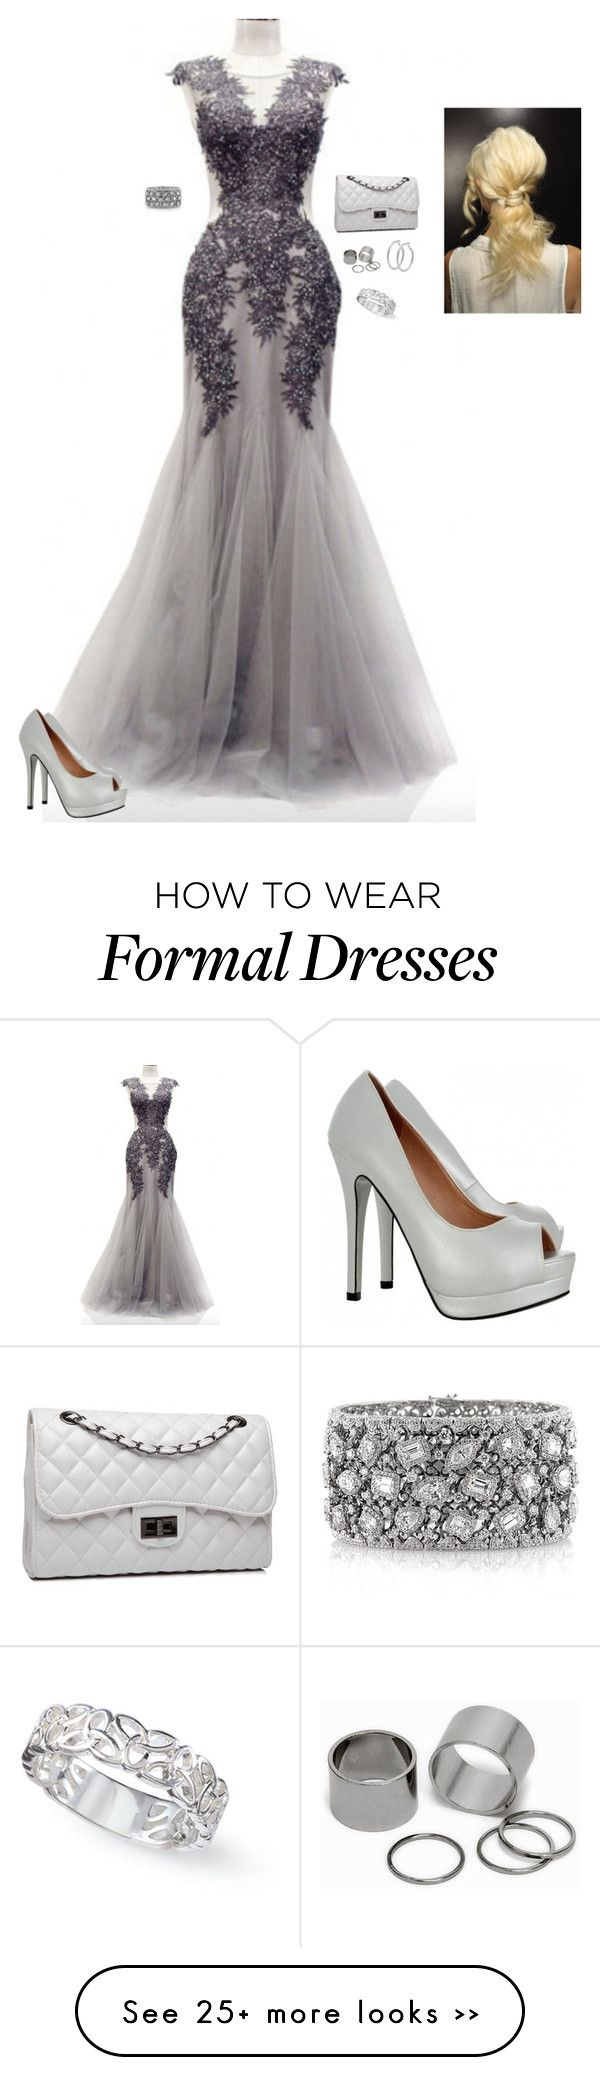 """""""That One Formal Event"""" by hanakdudley on Polyvore"""